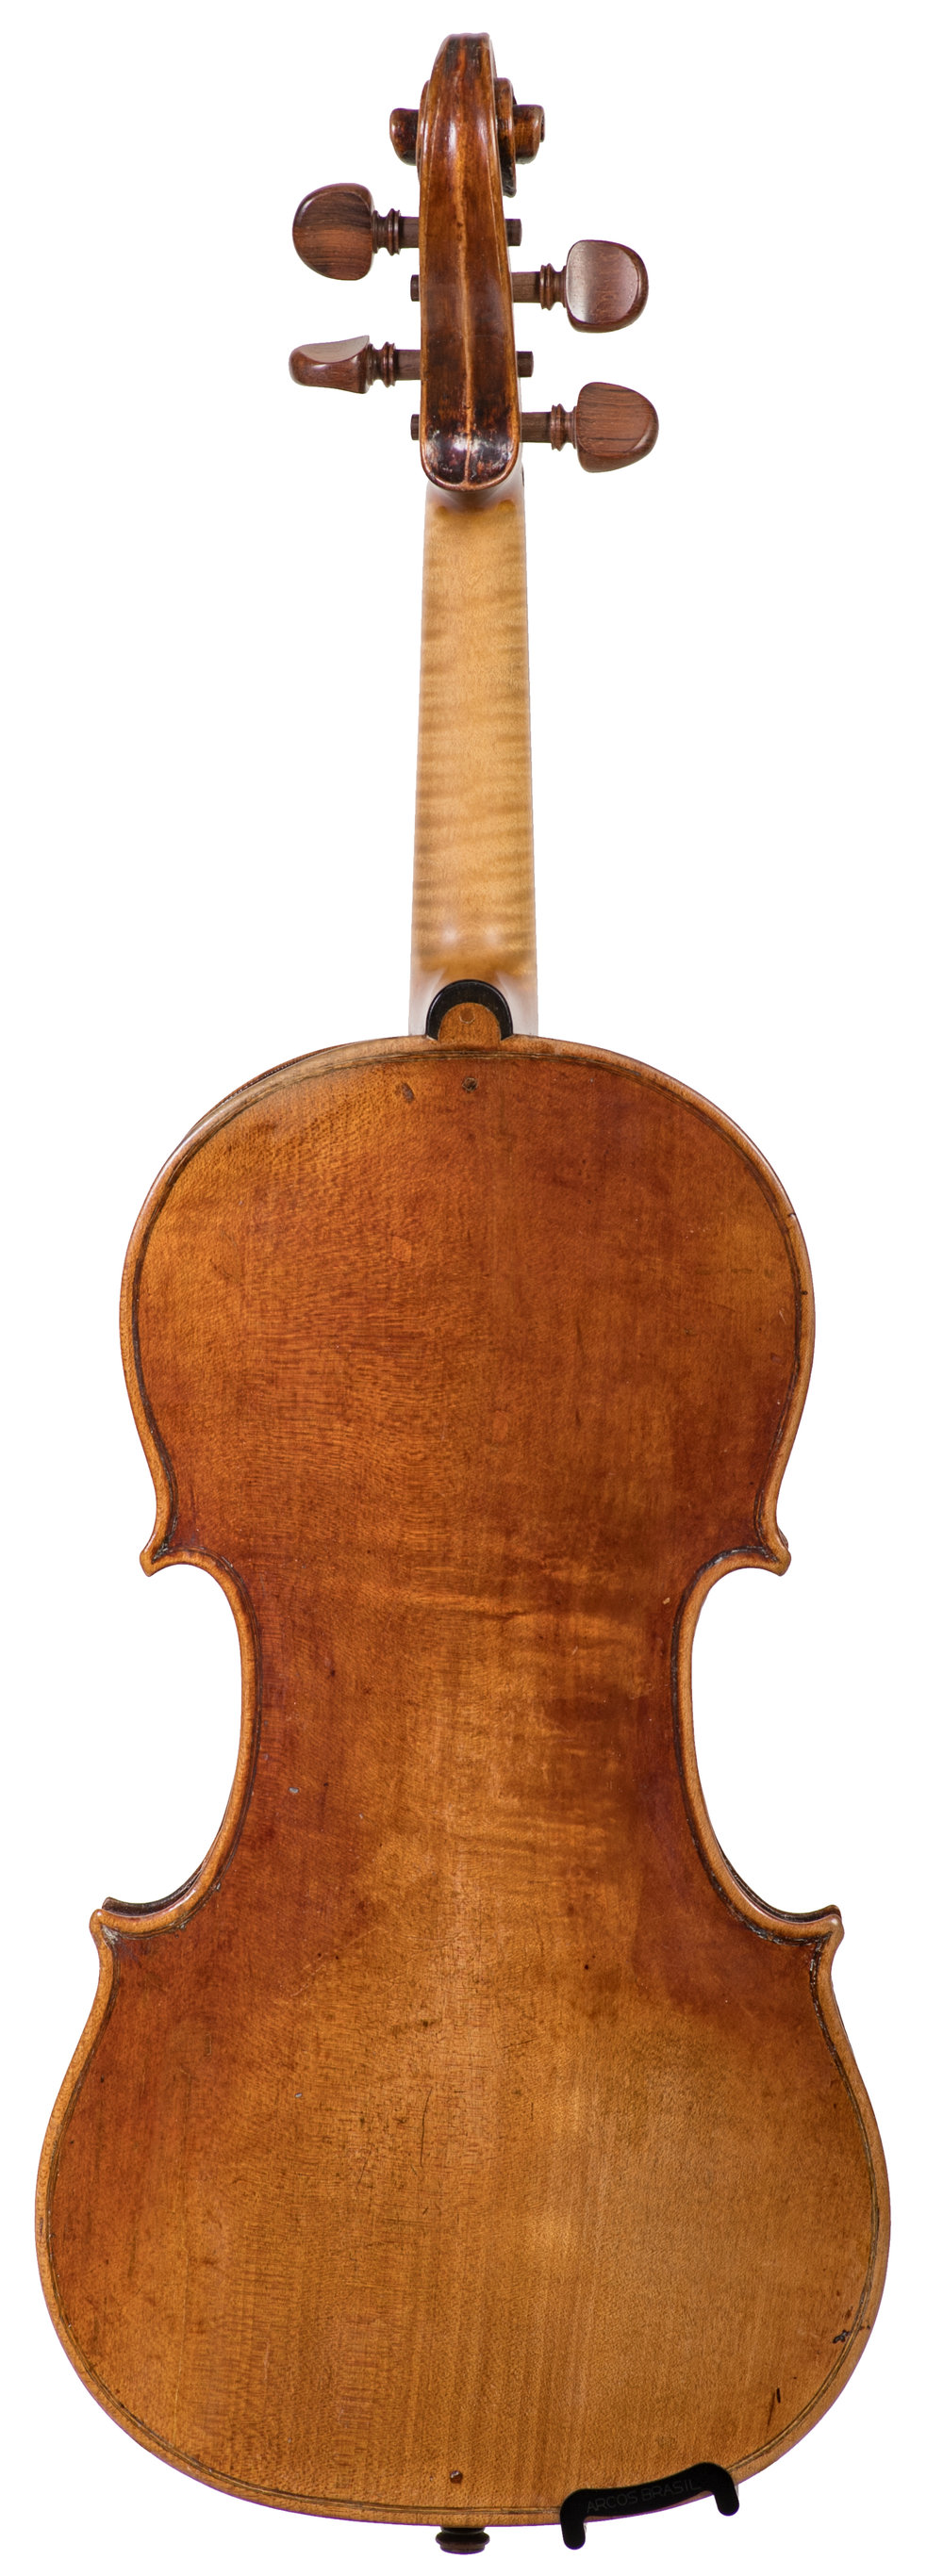 Antonio Casini Moderna 1690 back.jpg